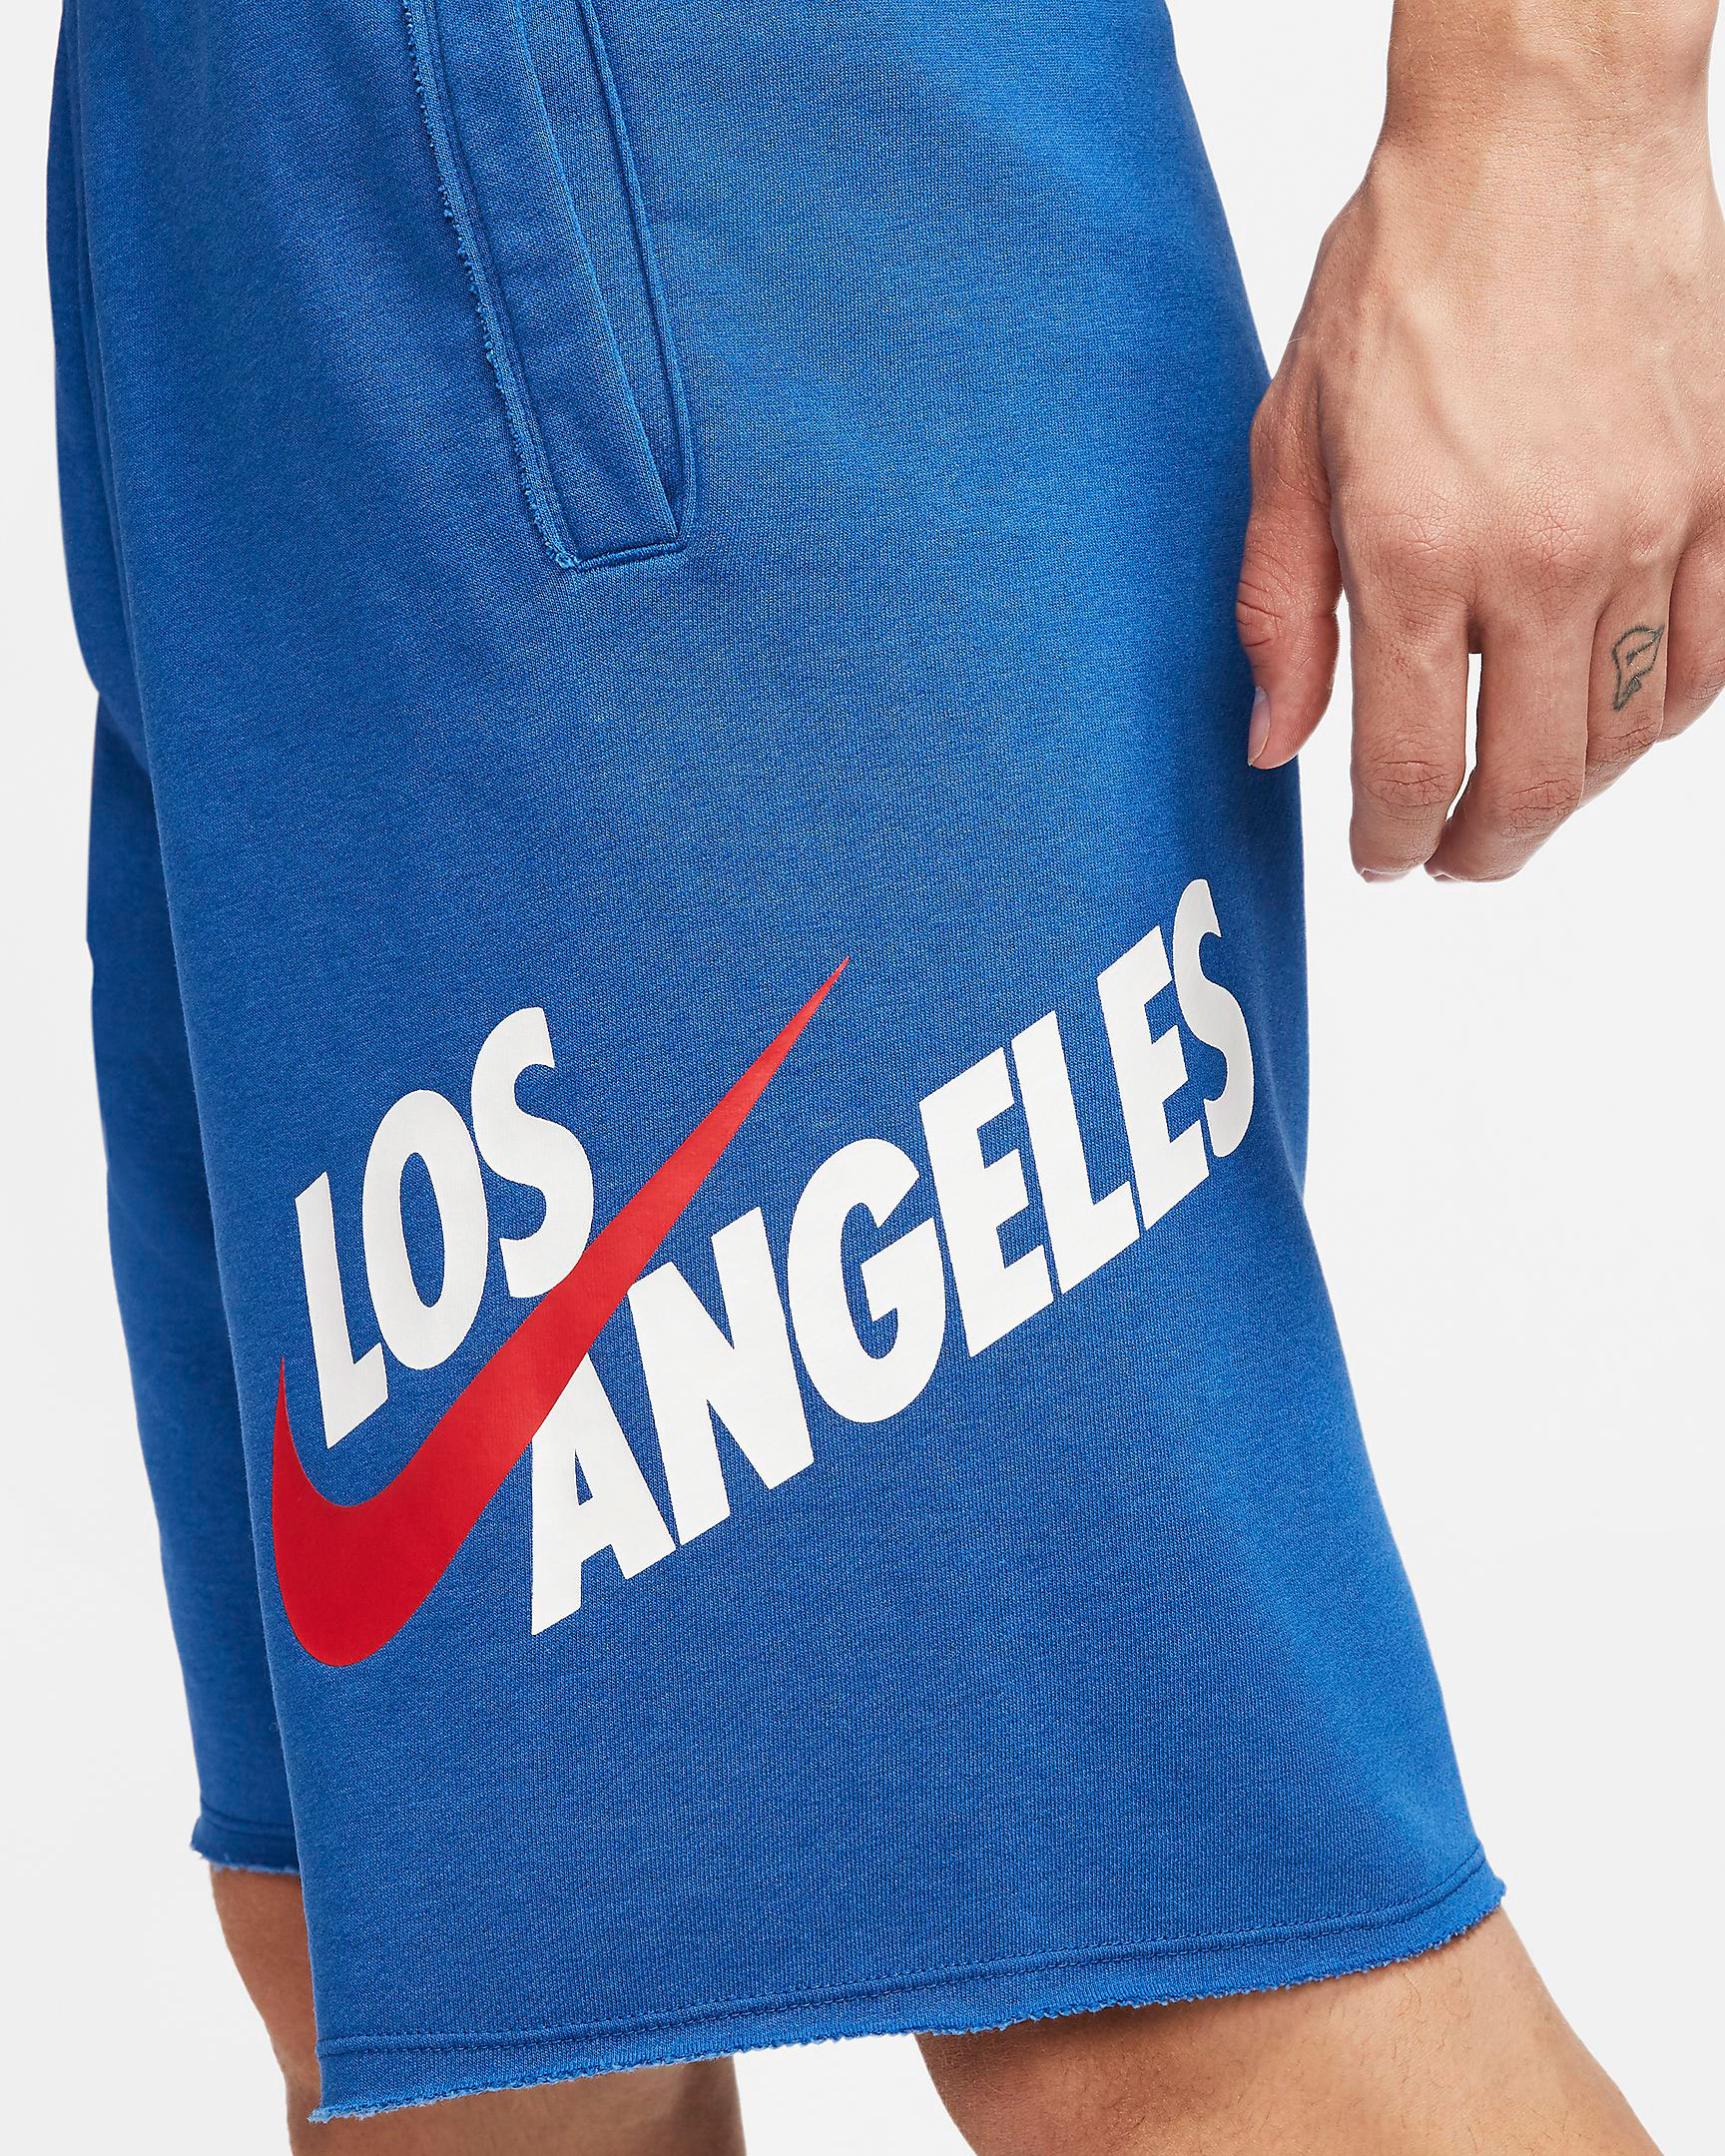 nike-sportswear-usa-los-angeles-alumni-shorts-2